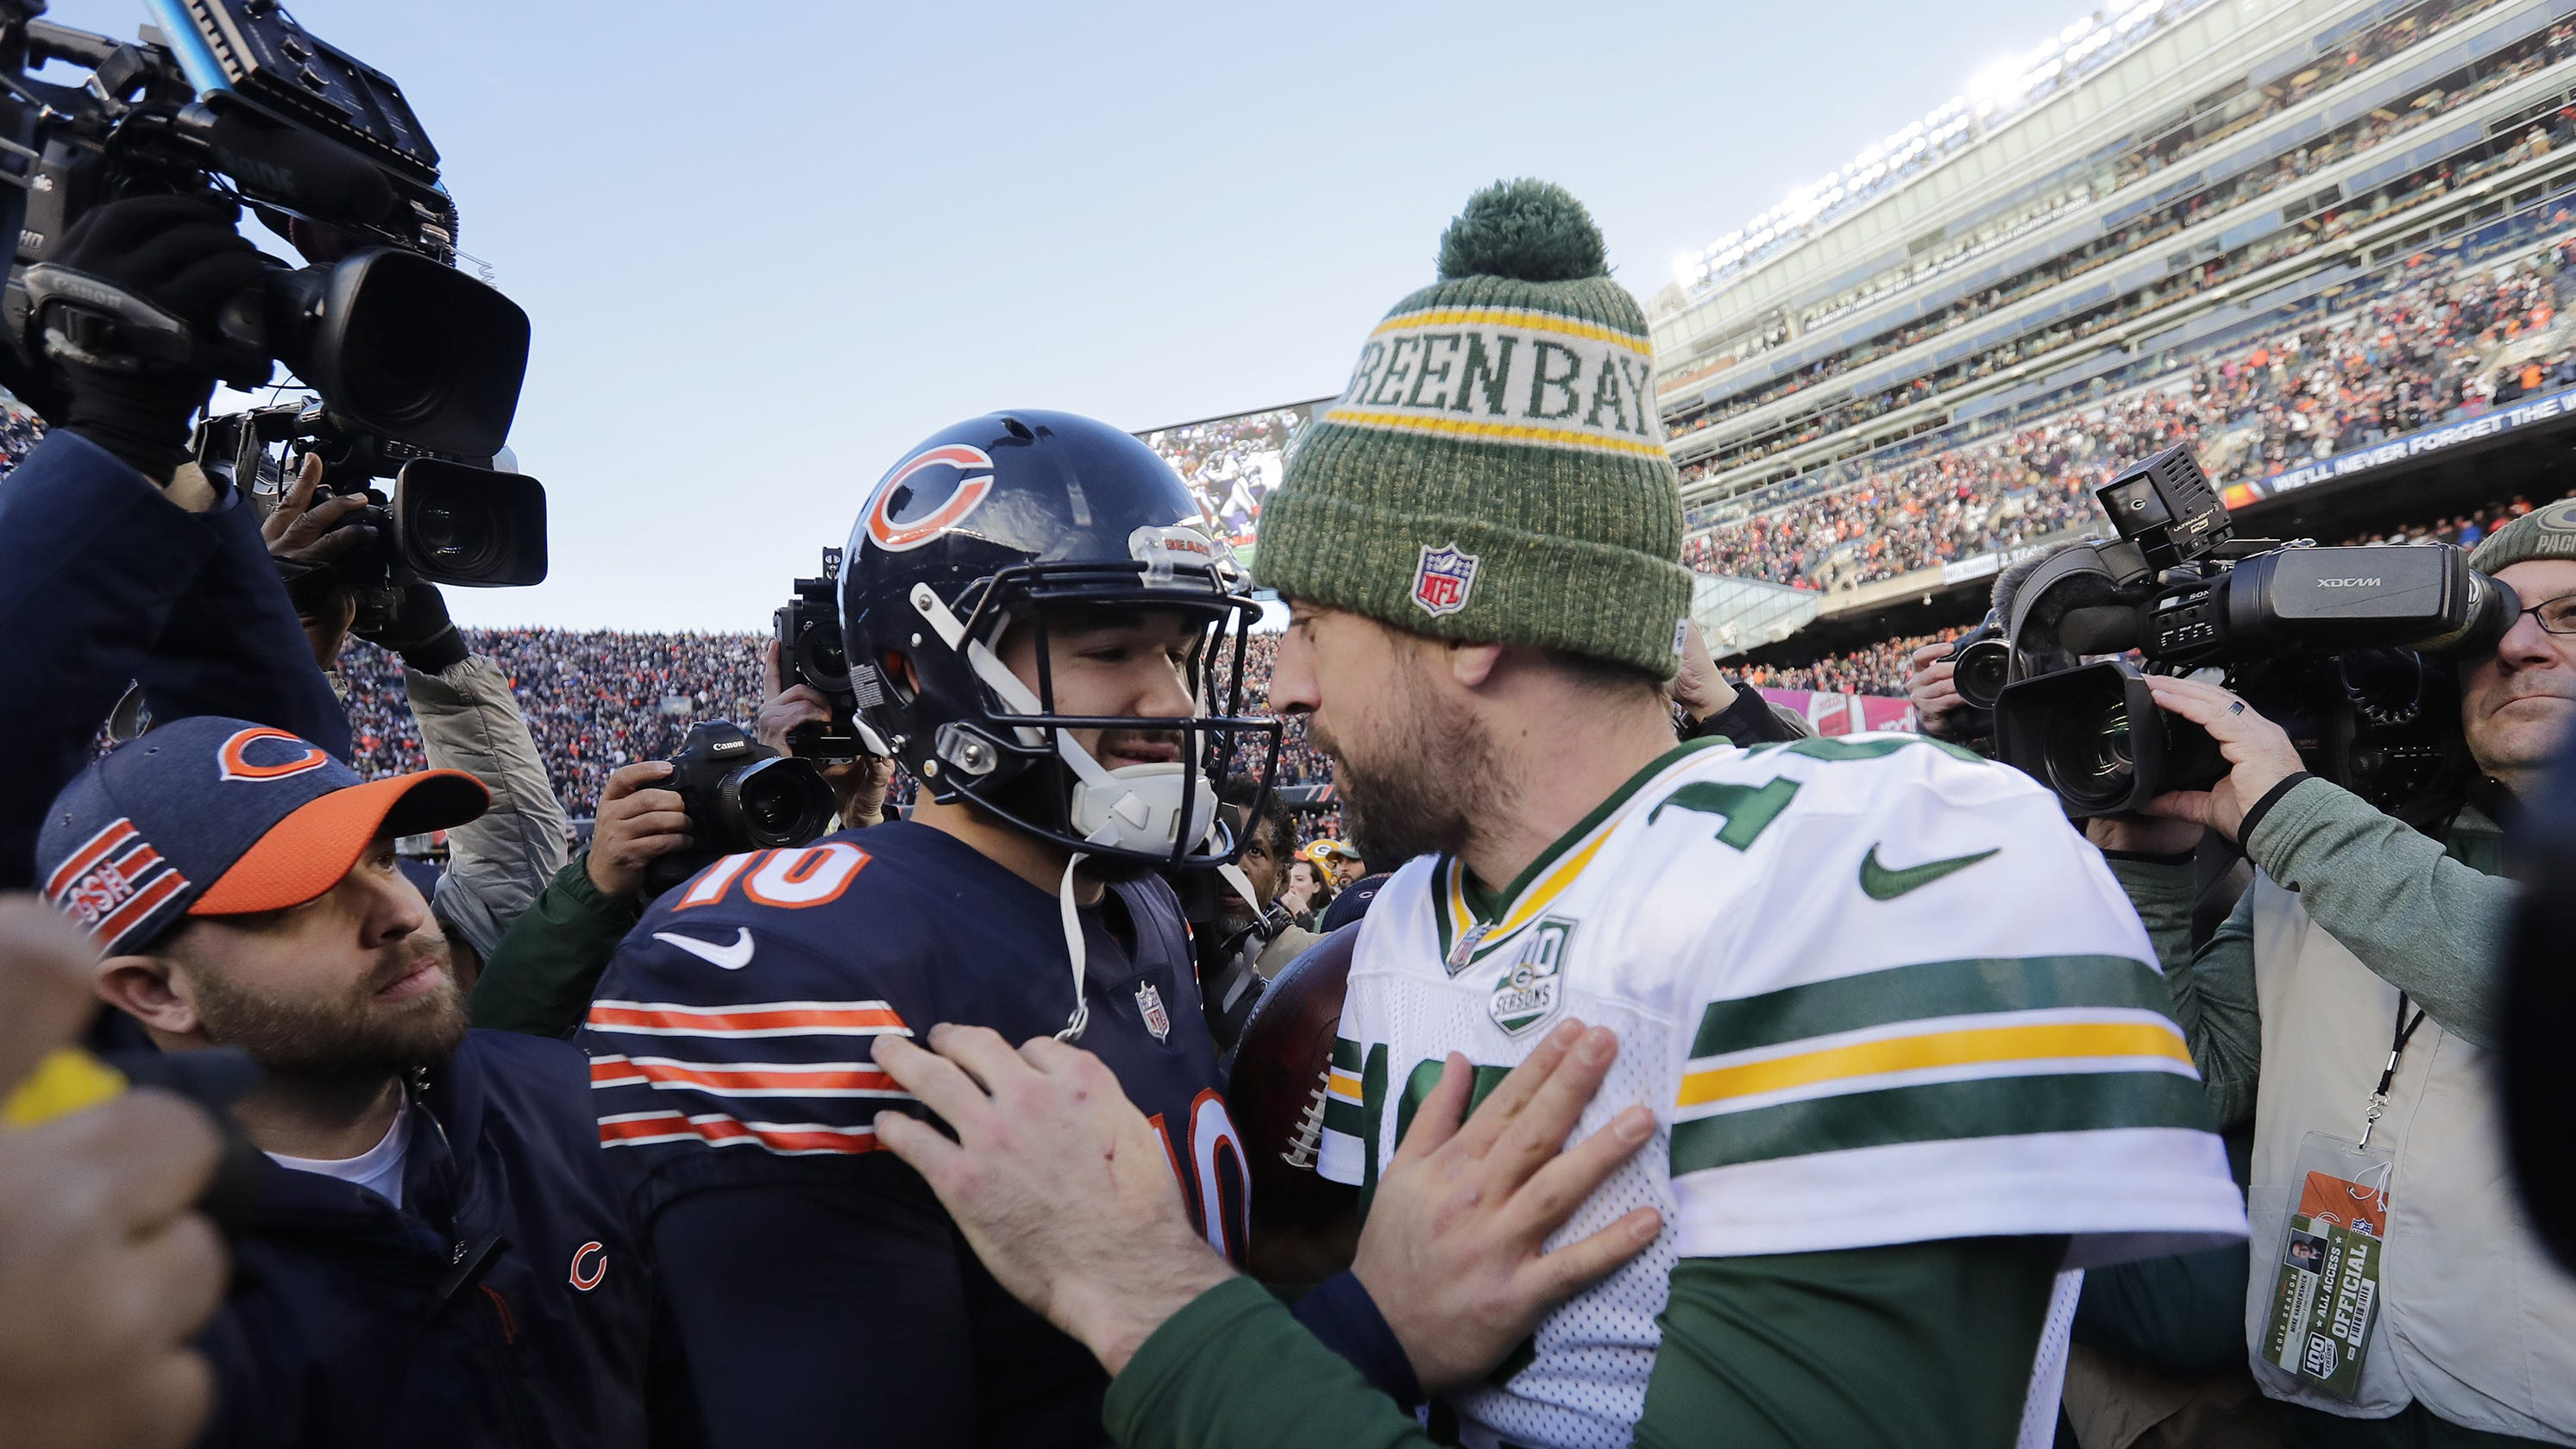 Dougherty: Tradition makes Packers vs  Bears the only true